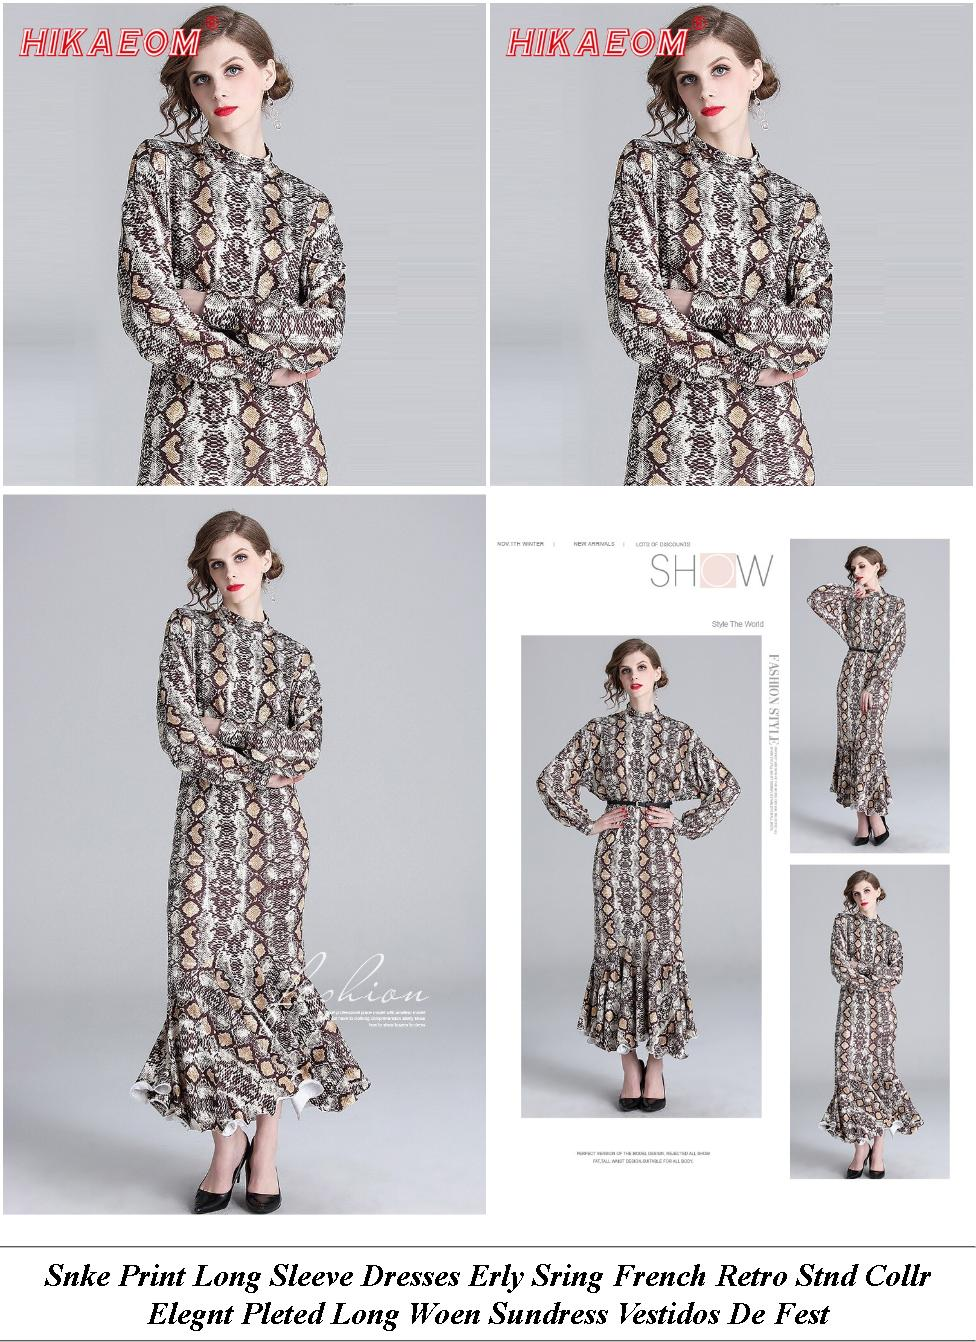 Maxi Cocktail Dresses Online - Clothes Dryer For Sale Philippines - Urgundy Maroon Long Dress